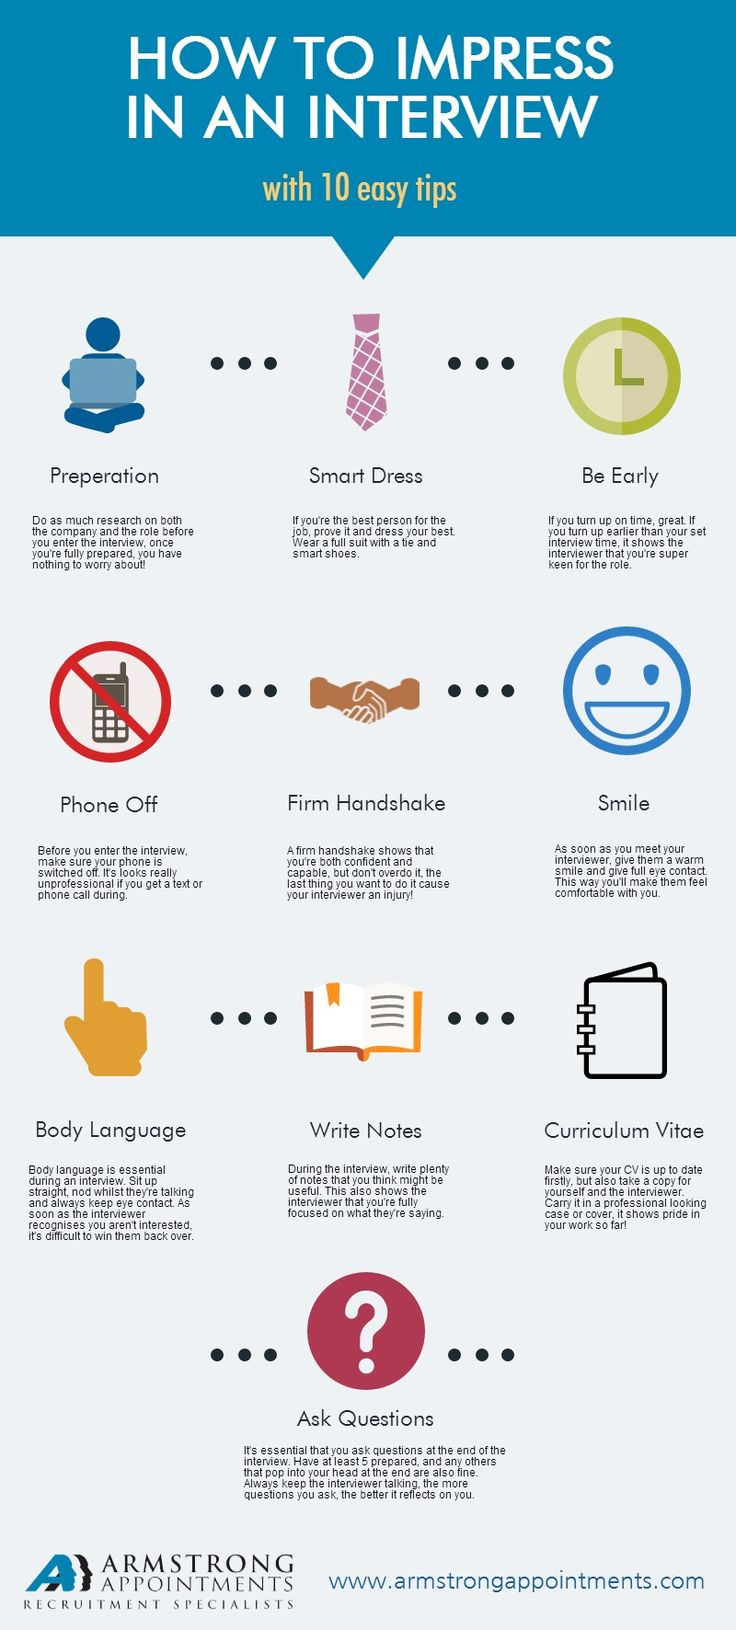 How To Impress In An Interview ....♥♥....   [Infographic]  #getthatjob #usq #career